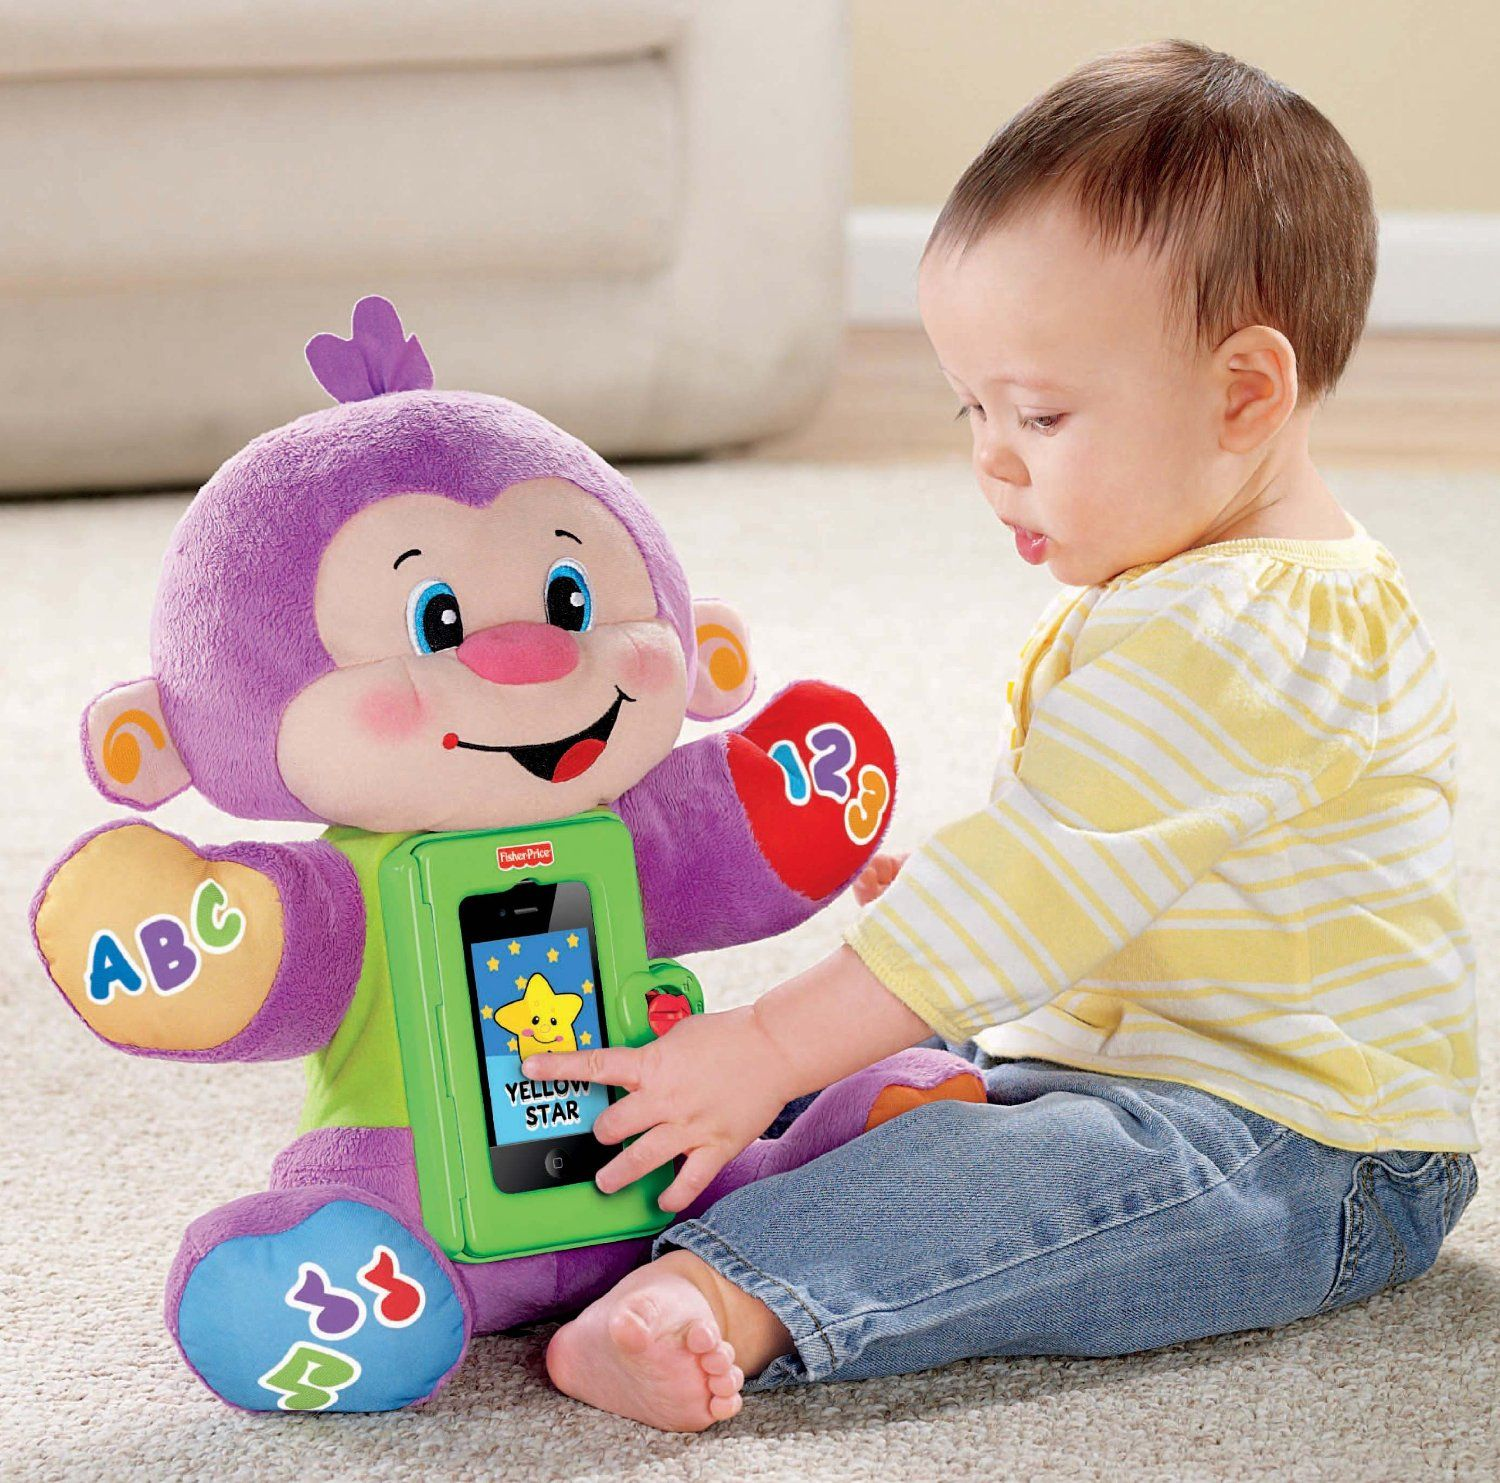 Babyproof iPhone 4 case Fisher Price iPhone Toy Laugh and Learn